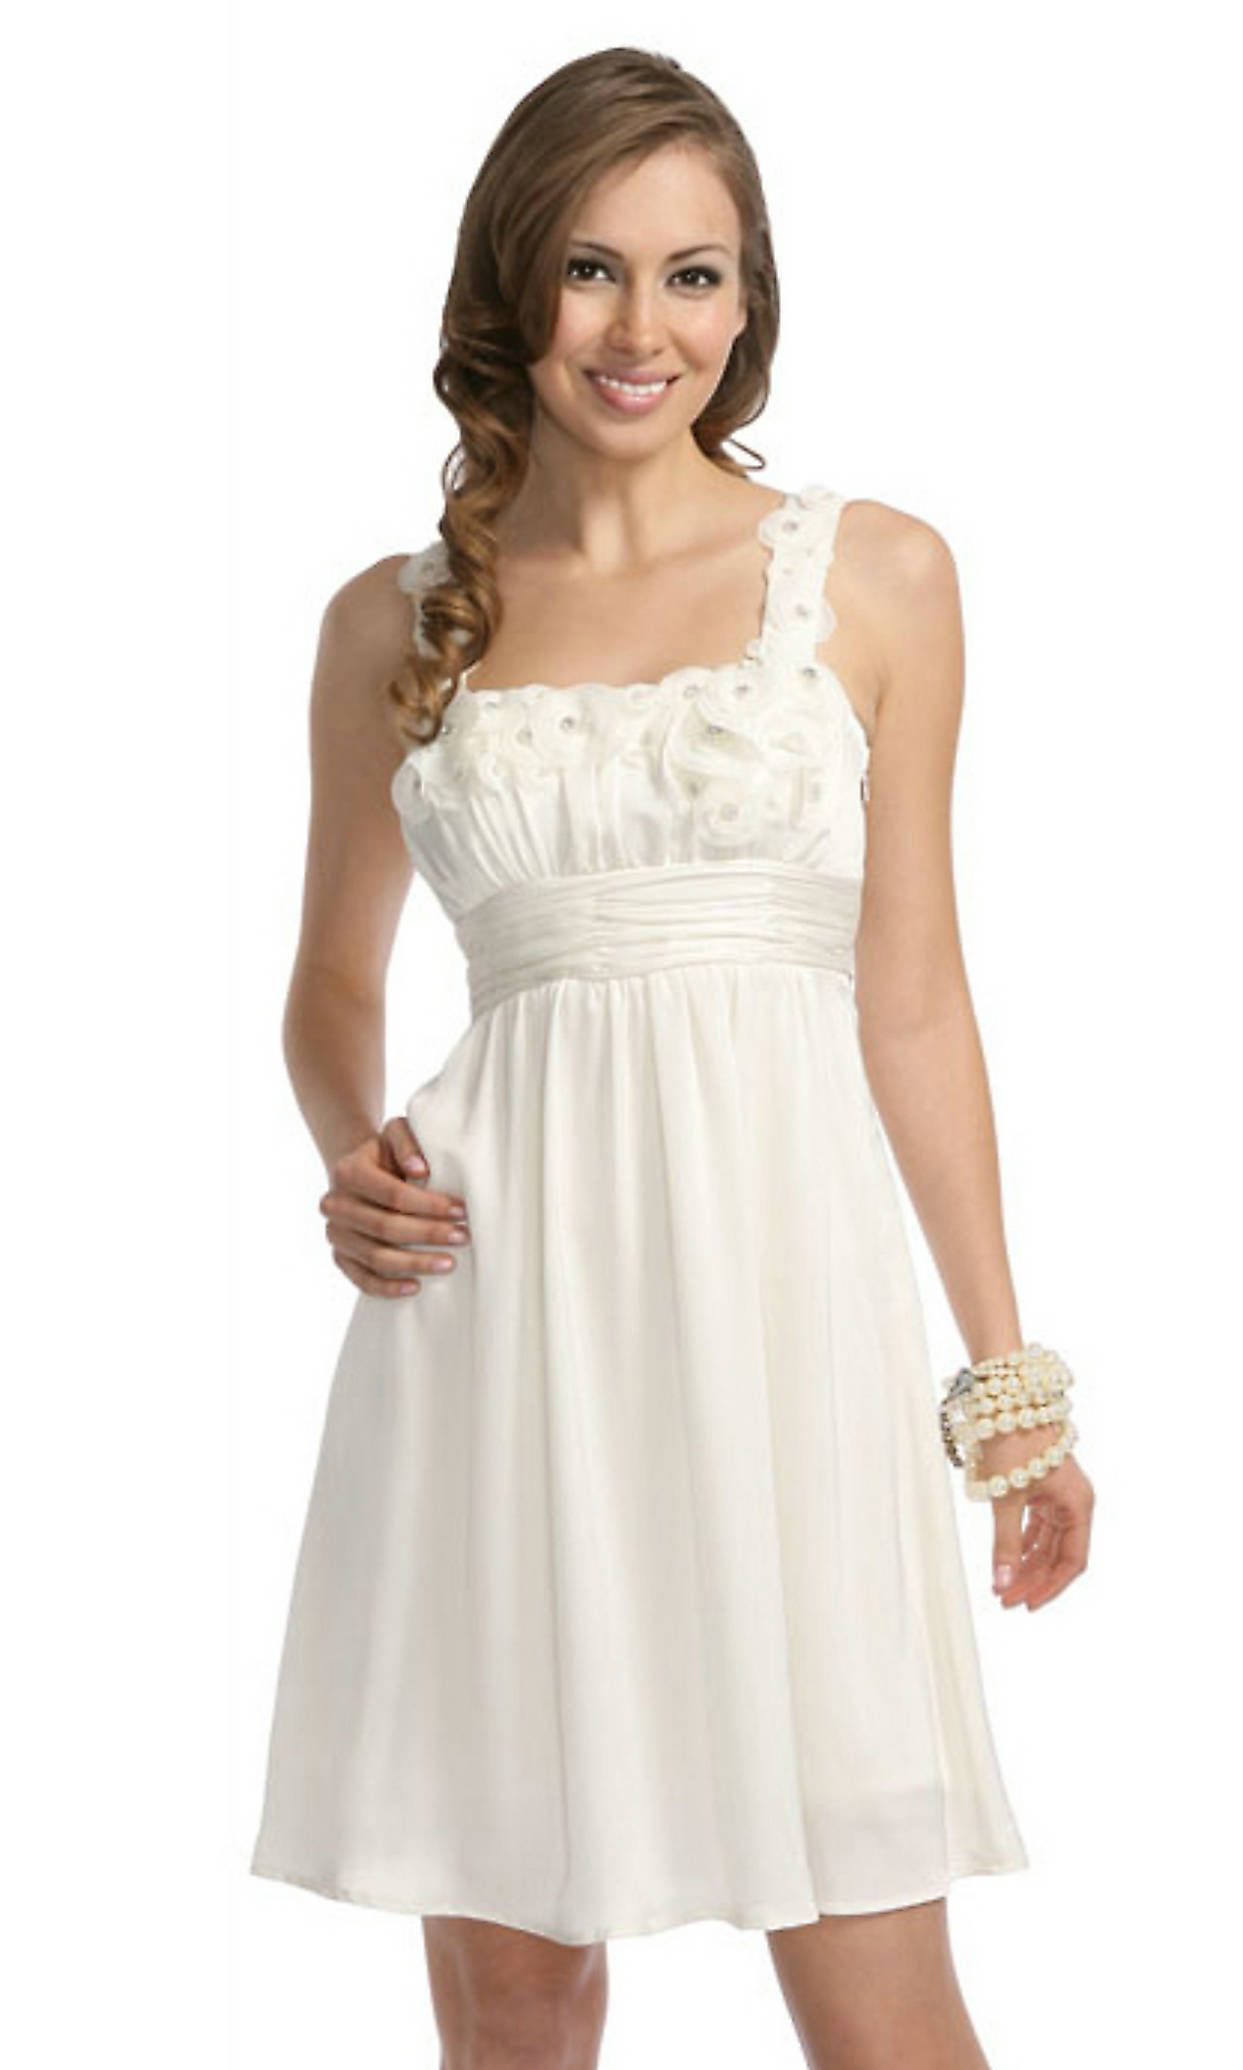 knee length white dresses for juniors | Gommap Blog